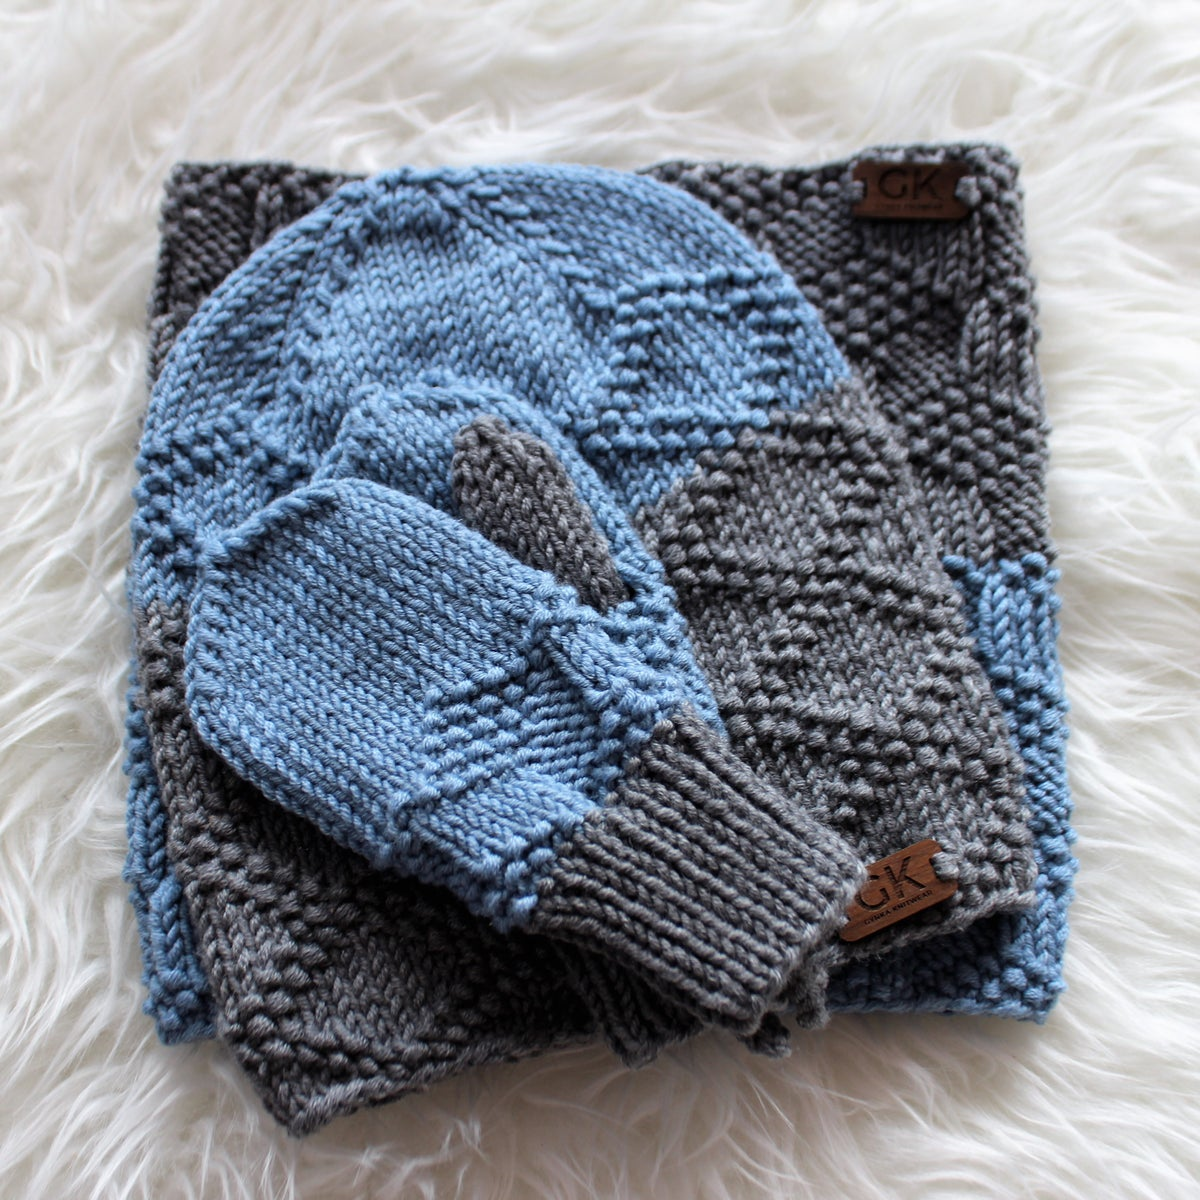 Image of Triton Set - Grey and forget-me-not - 1-3 years